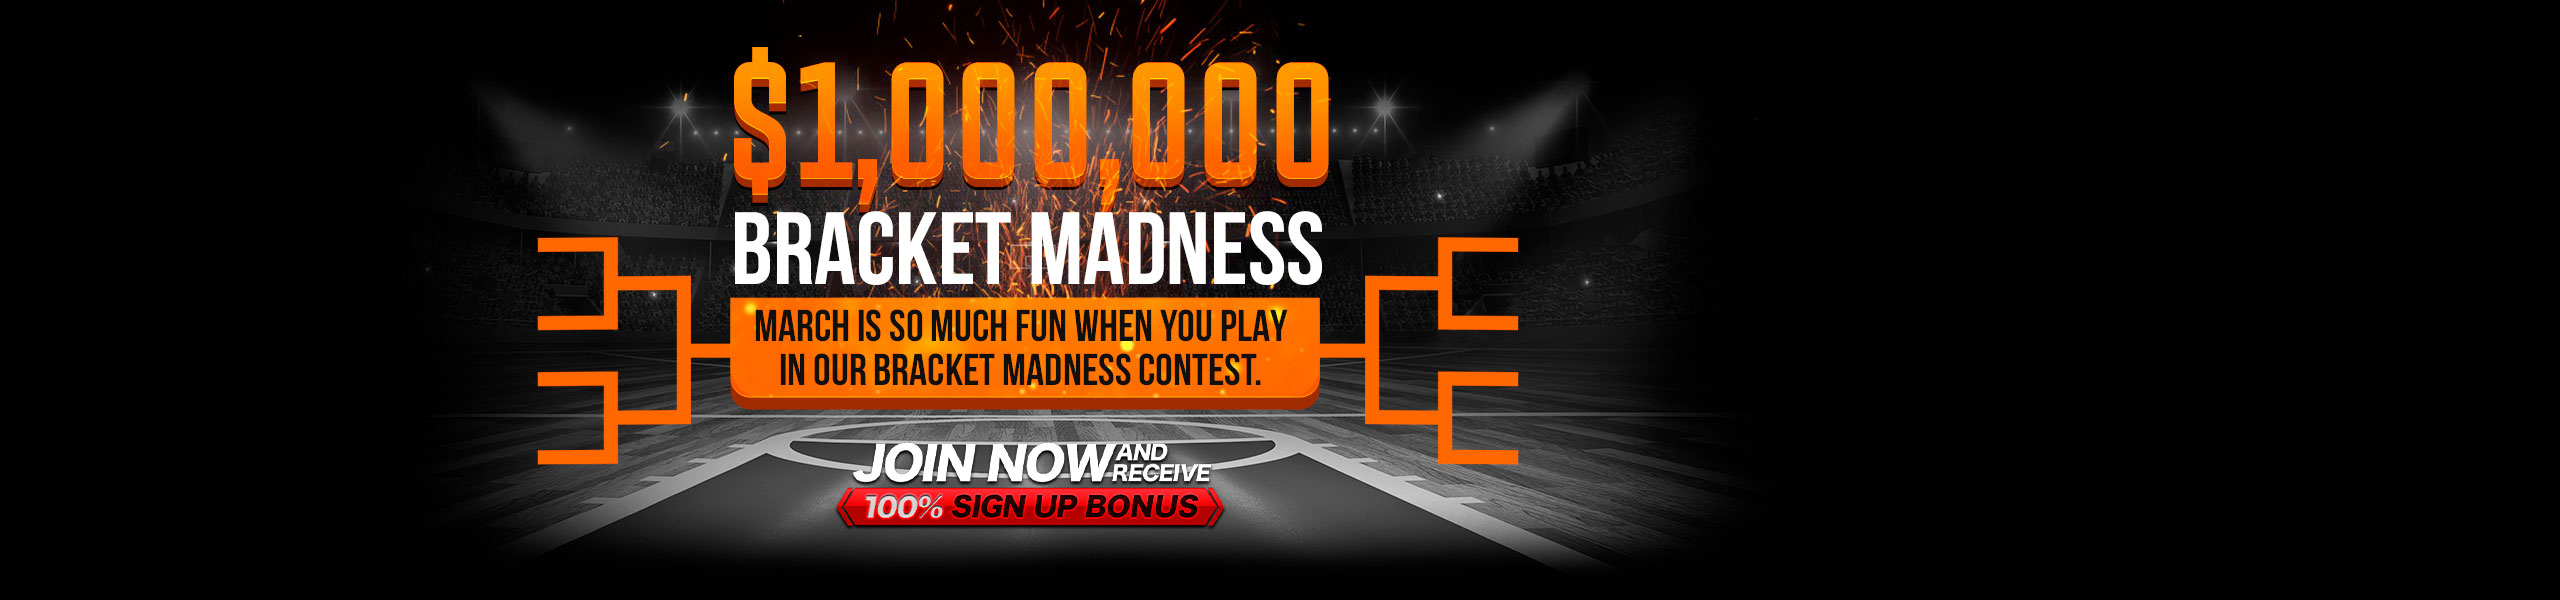 Bet on NBA Bracket Contest 100% Bonus